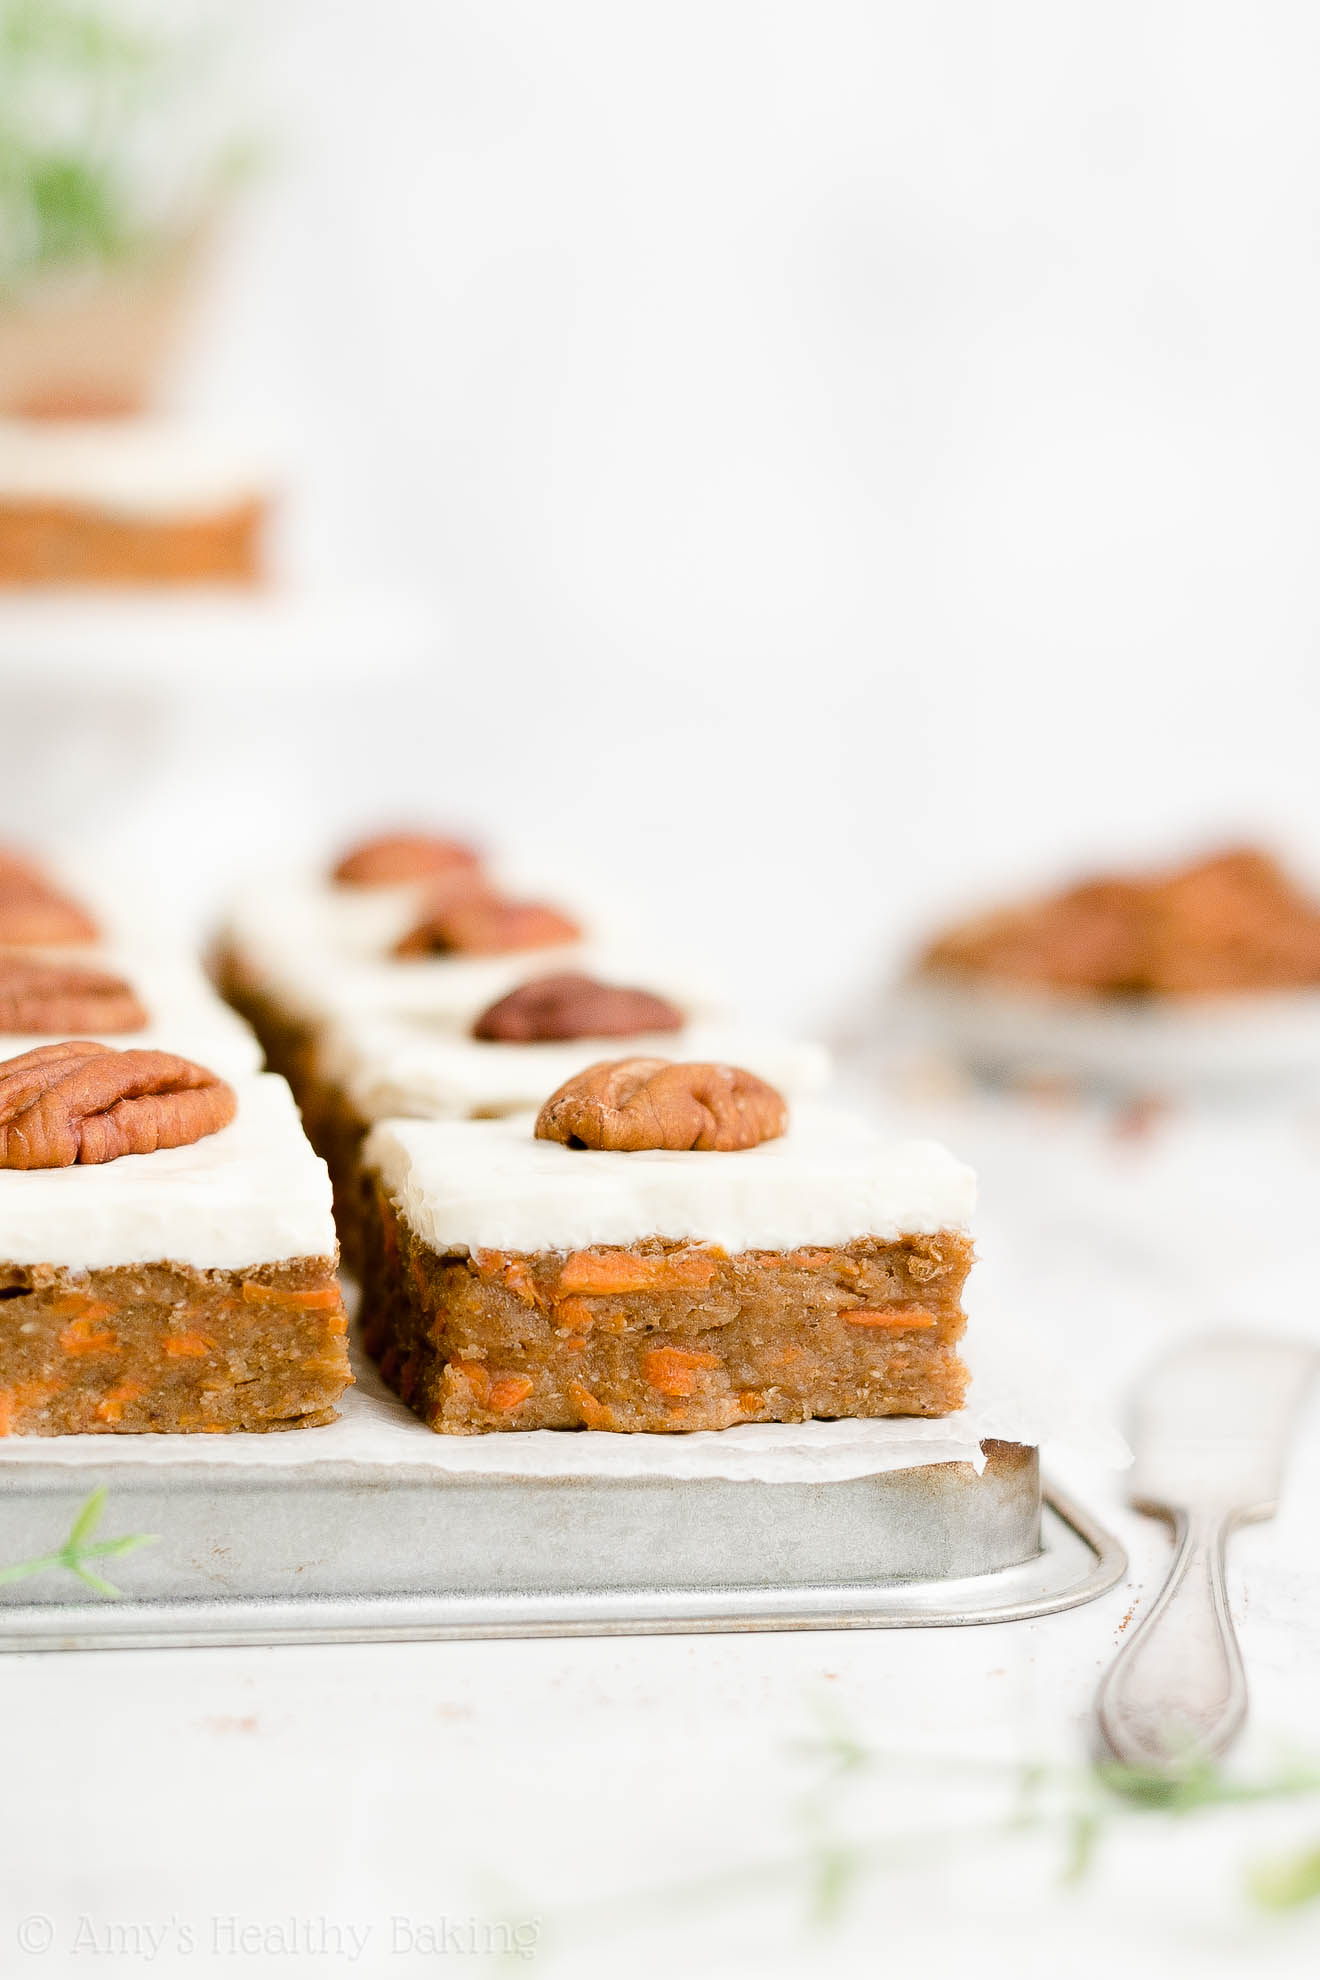 Easy Healthy Whole Wheat Weight Watchers Low Sugar Chewy Carrot Cake Bars